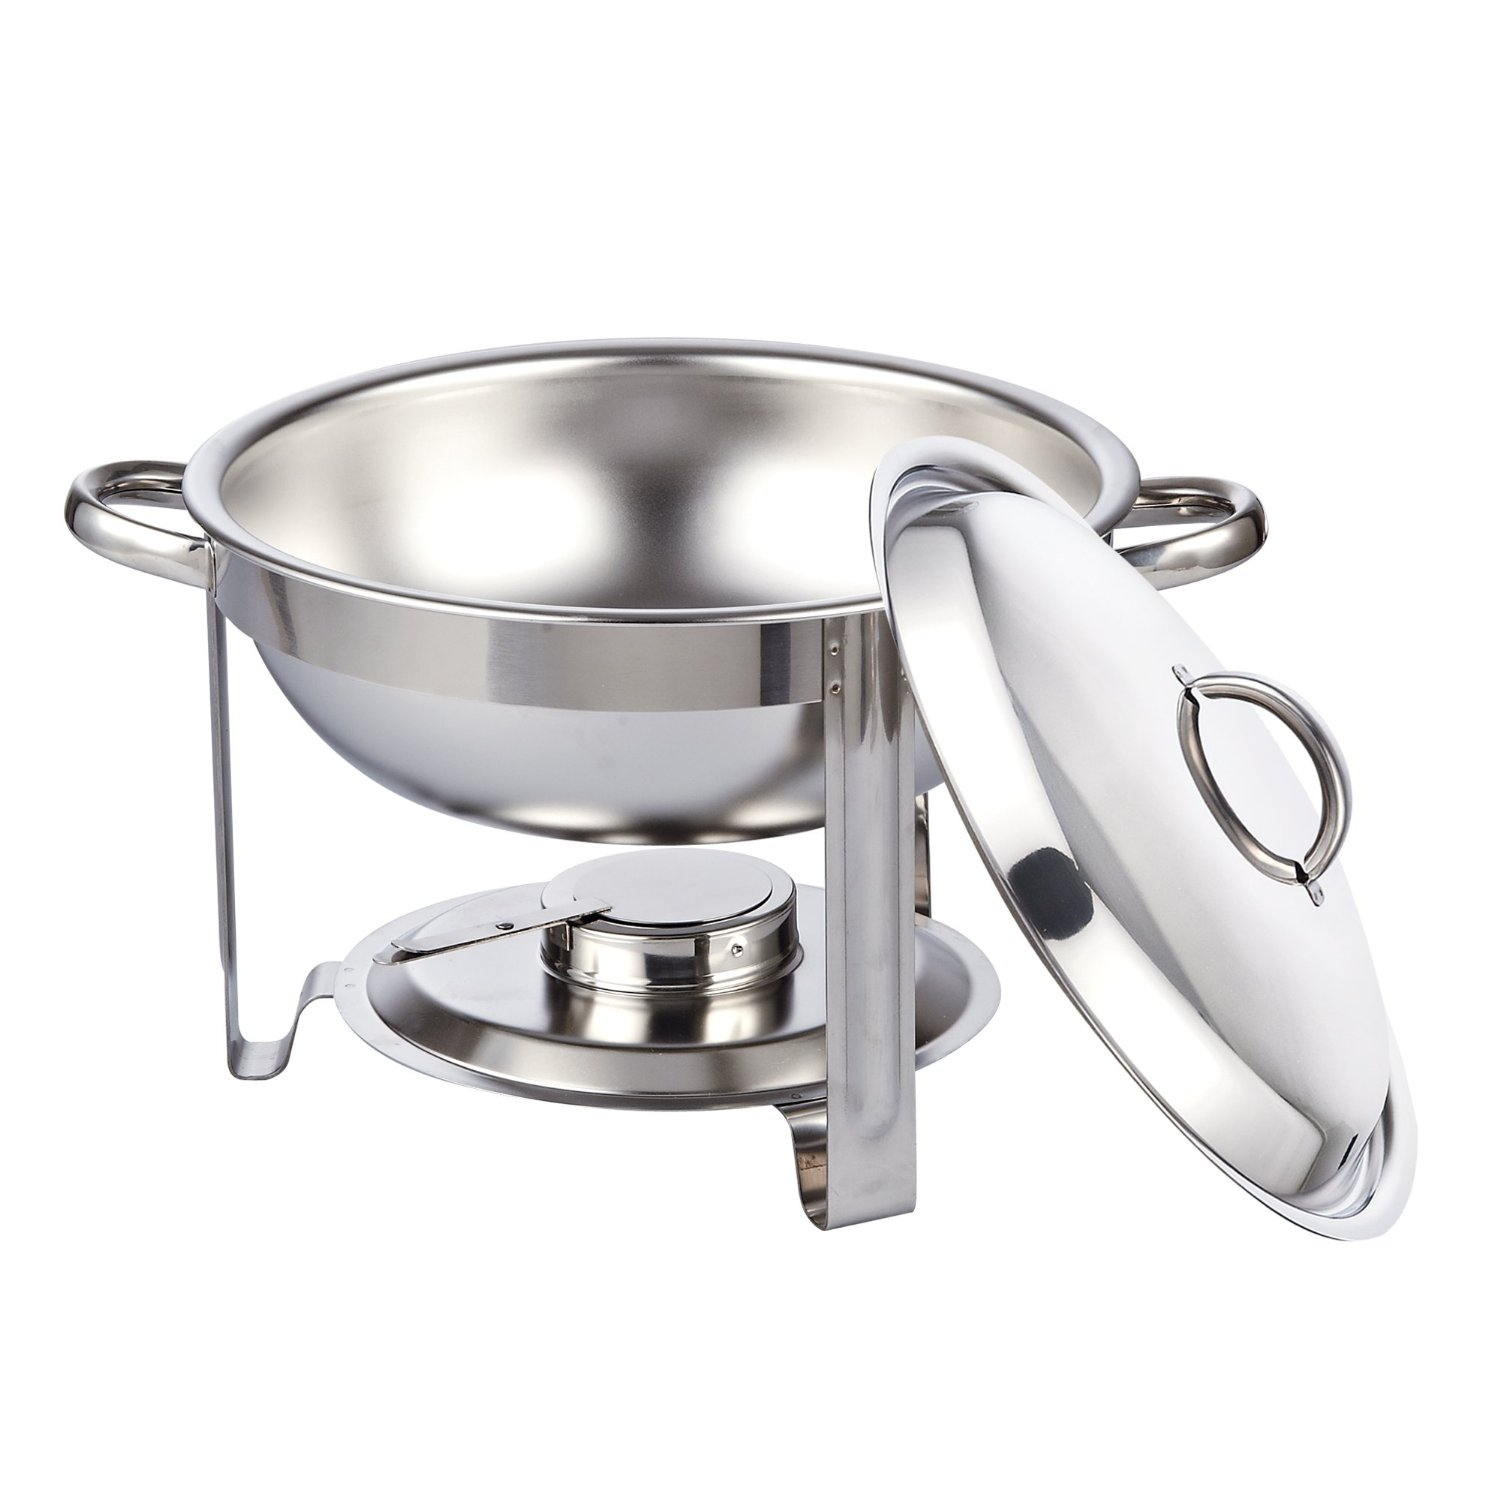 Chafer 5 qt. Soup Sever